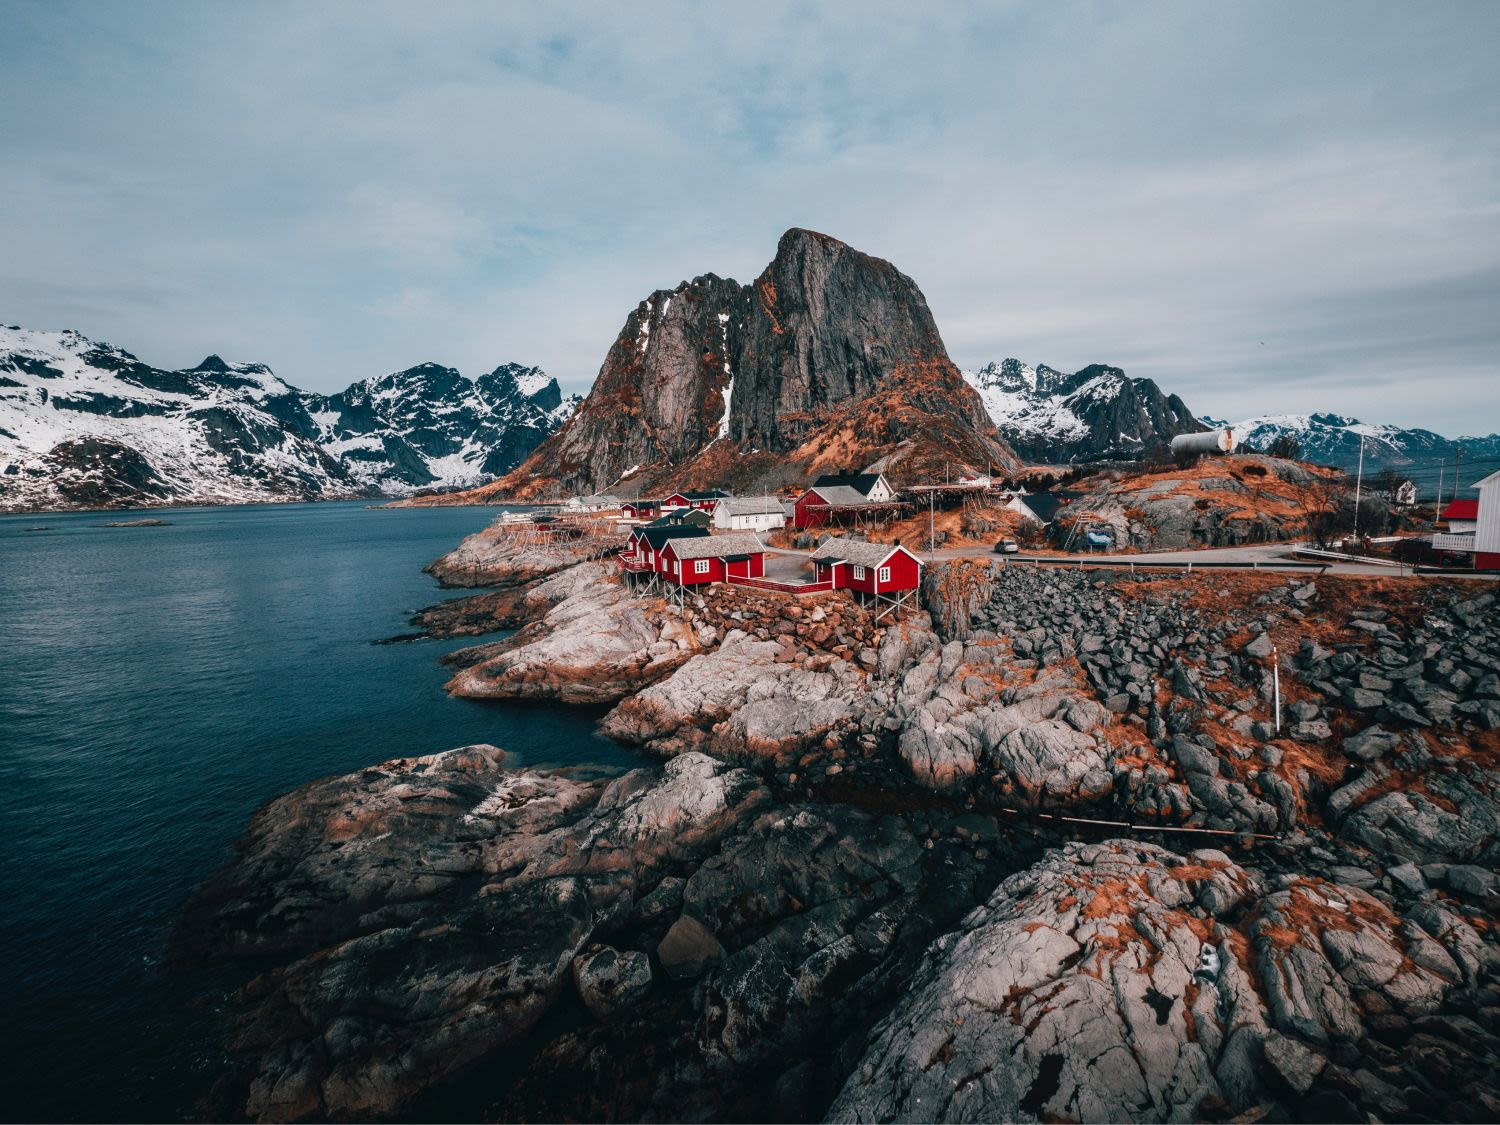 Red houses on rocky shoreline with majestic mountains in the background.